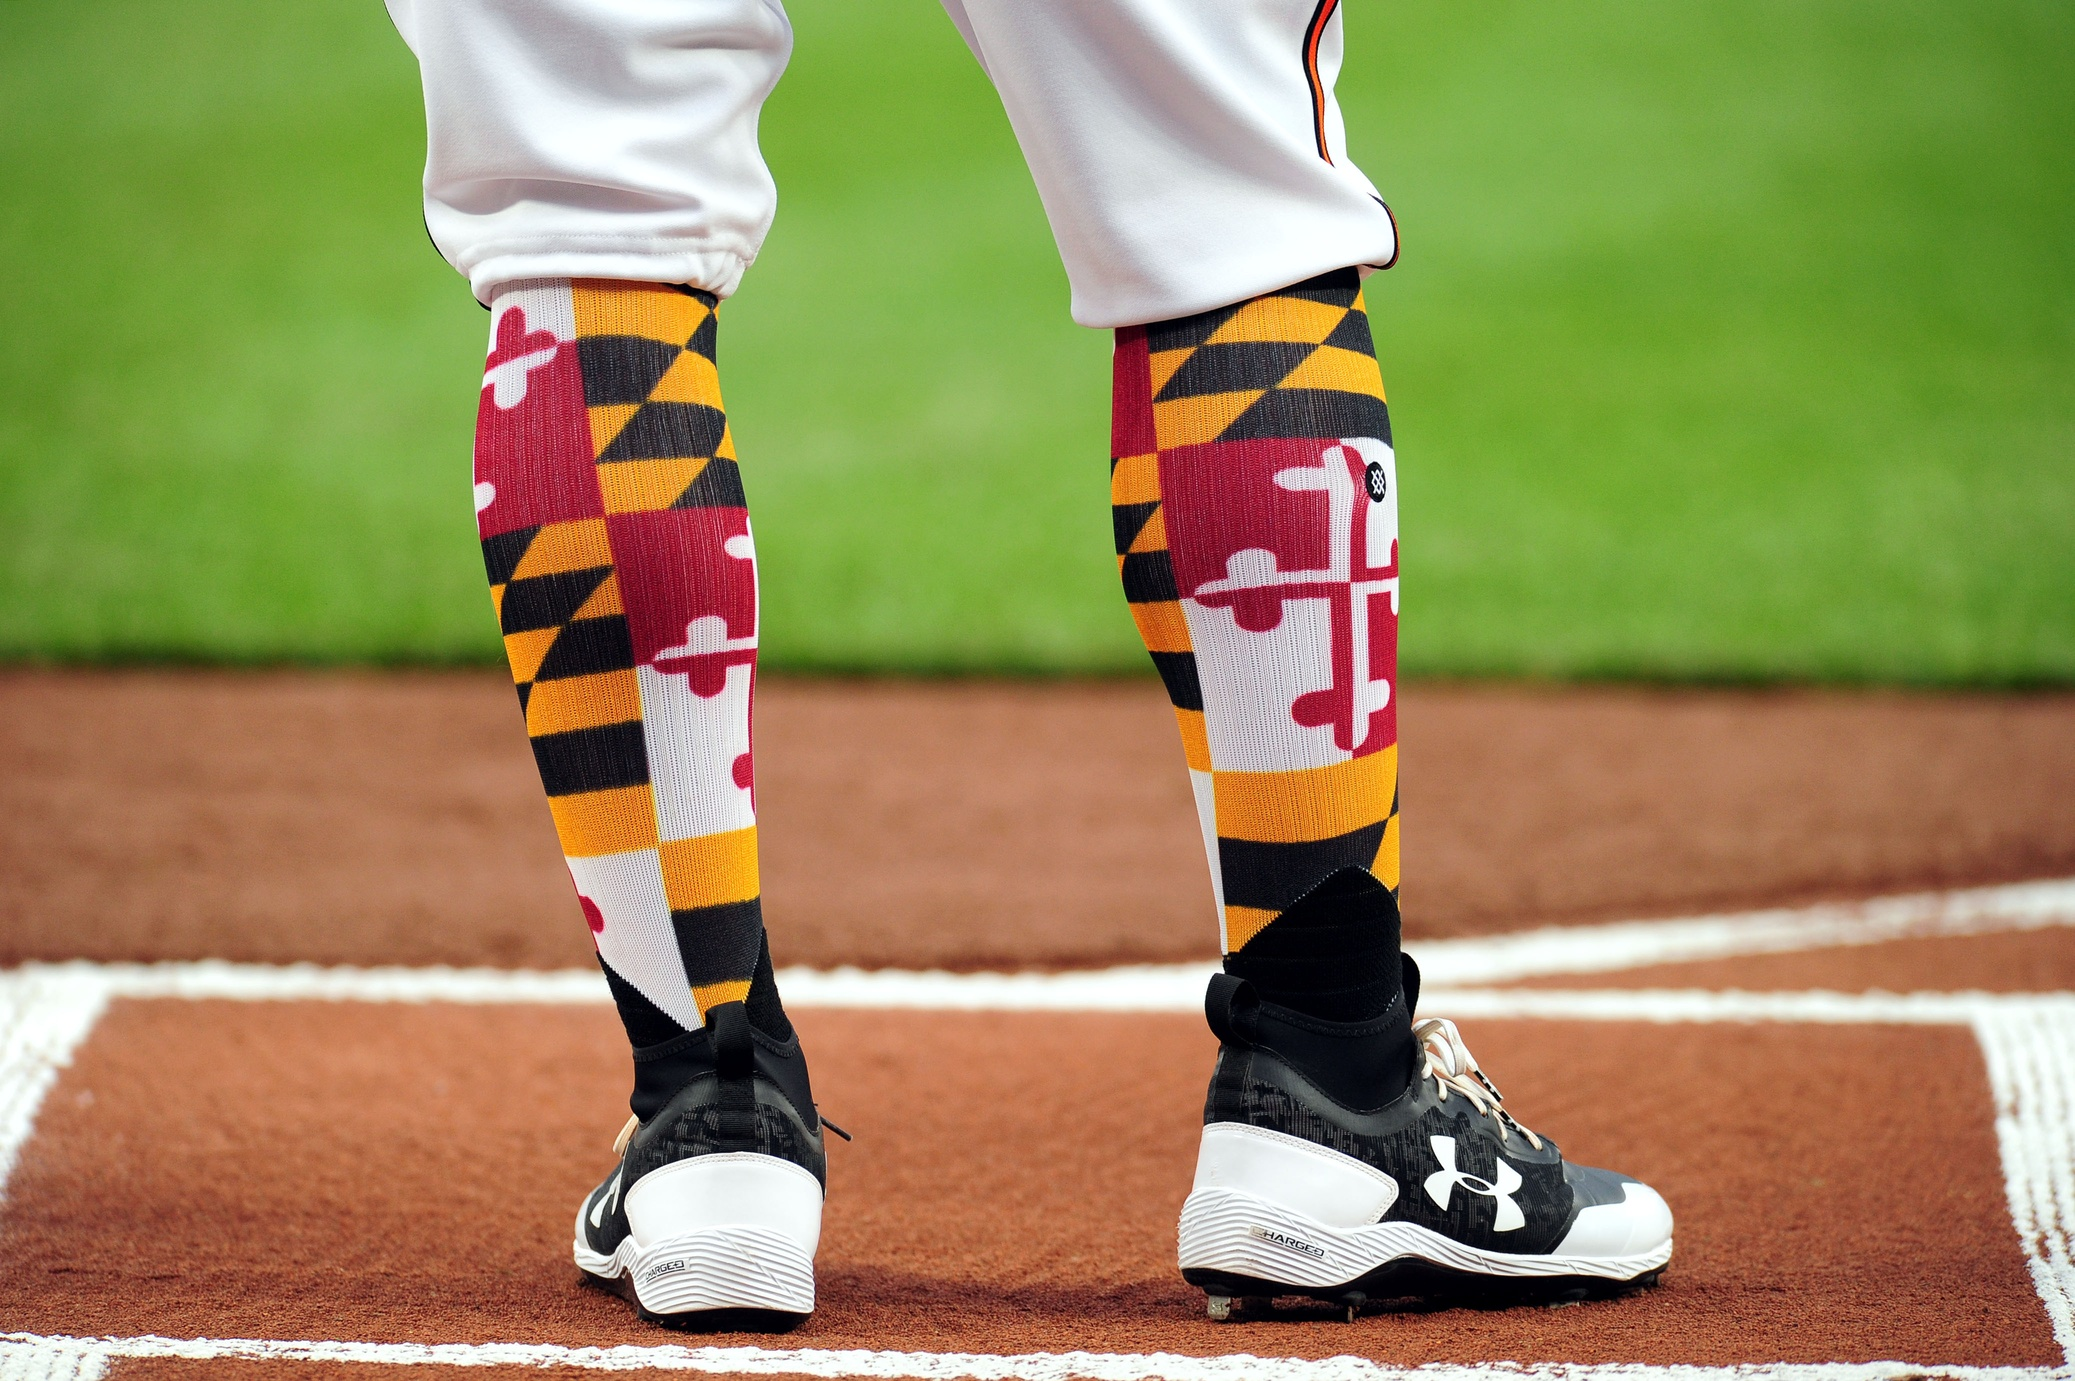 Photos: Orioles Celebrate Maryland With Special Uniforms